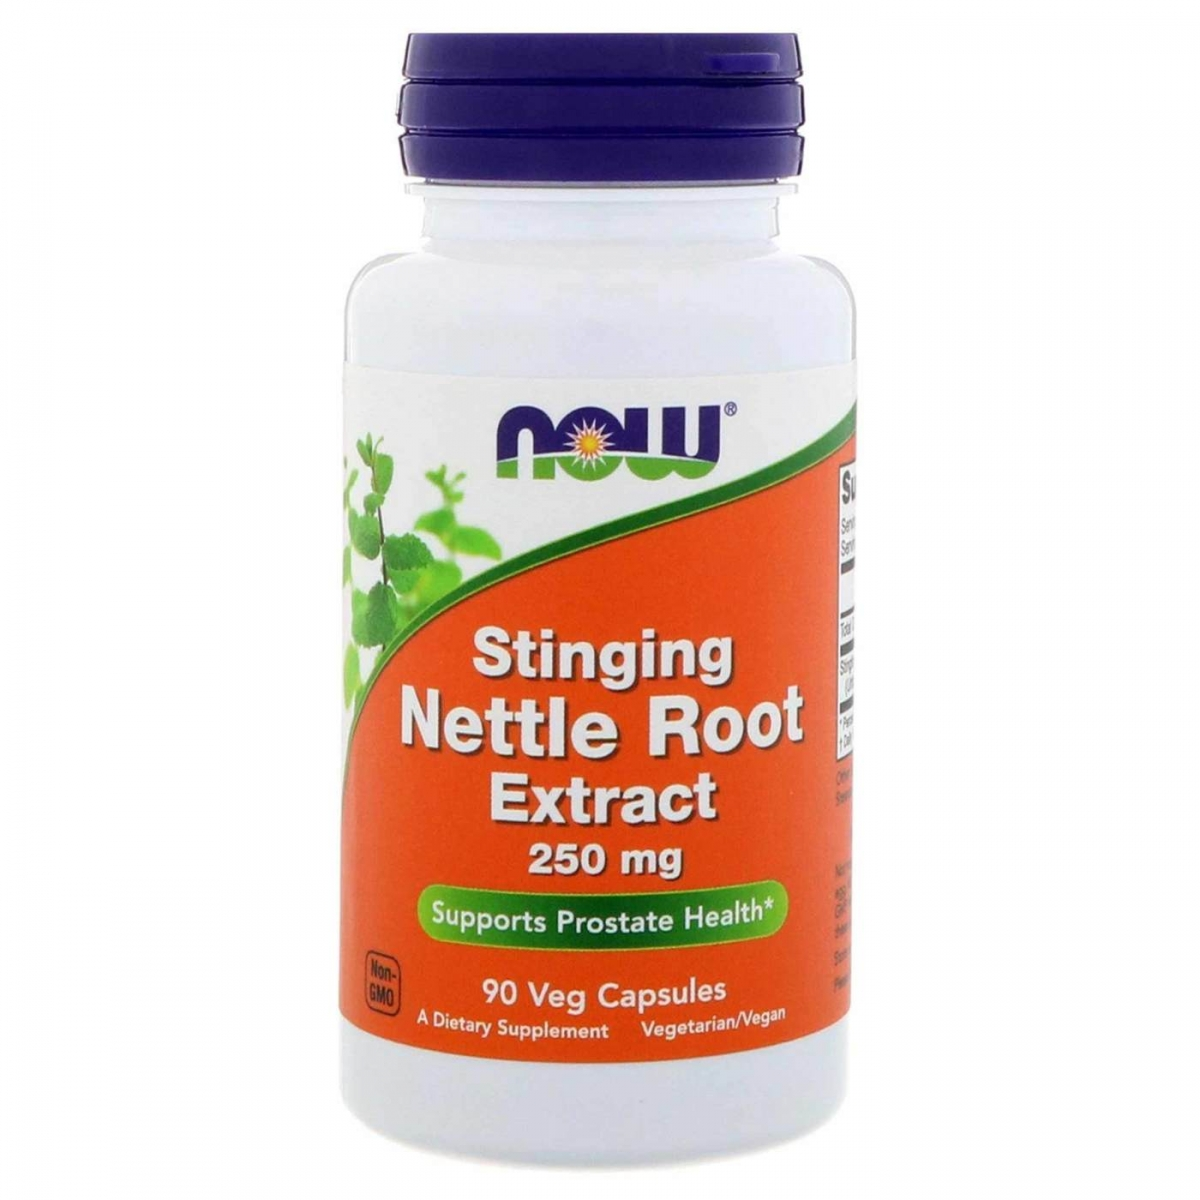 NOW Nettle Root Extract 250mg 90caps